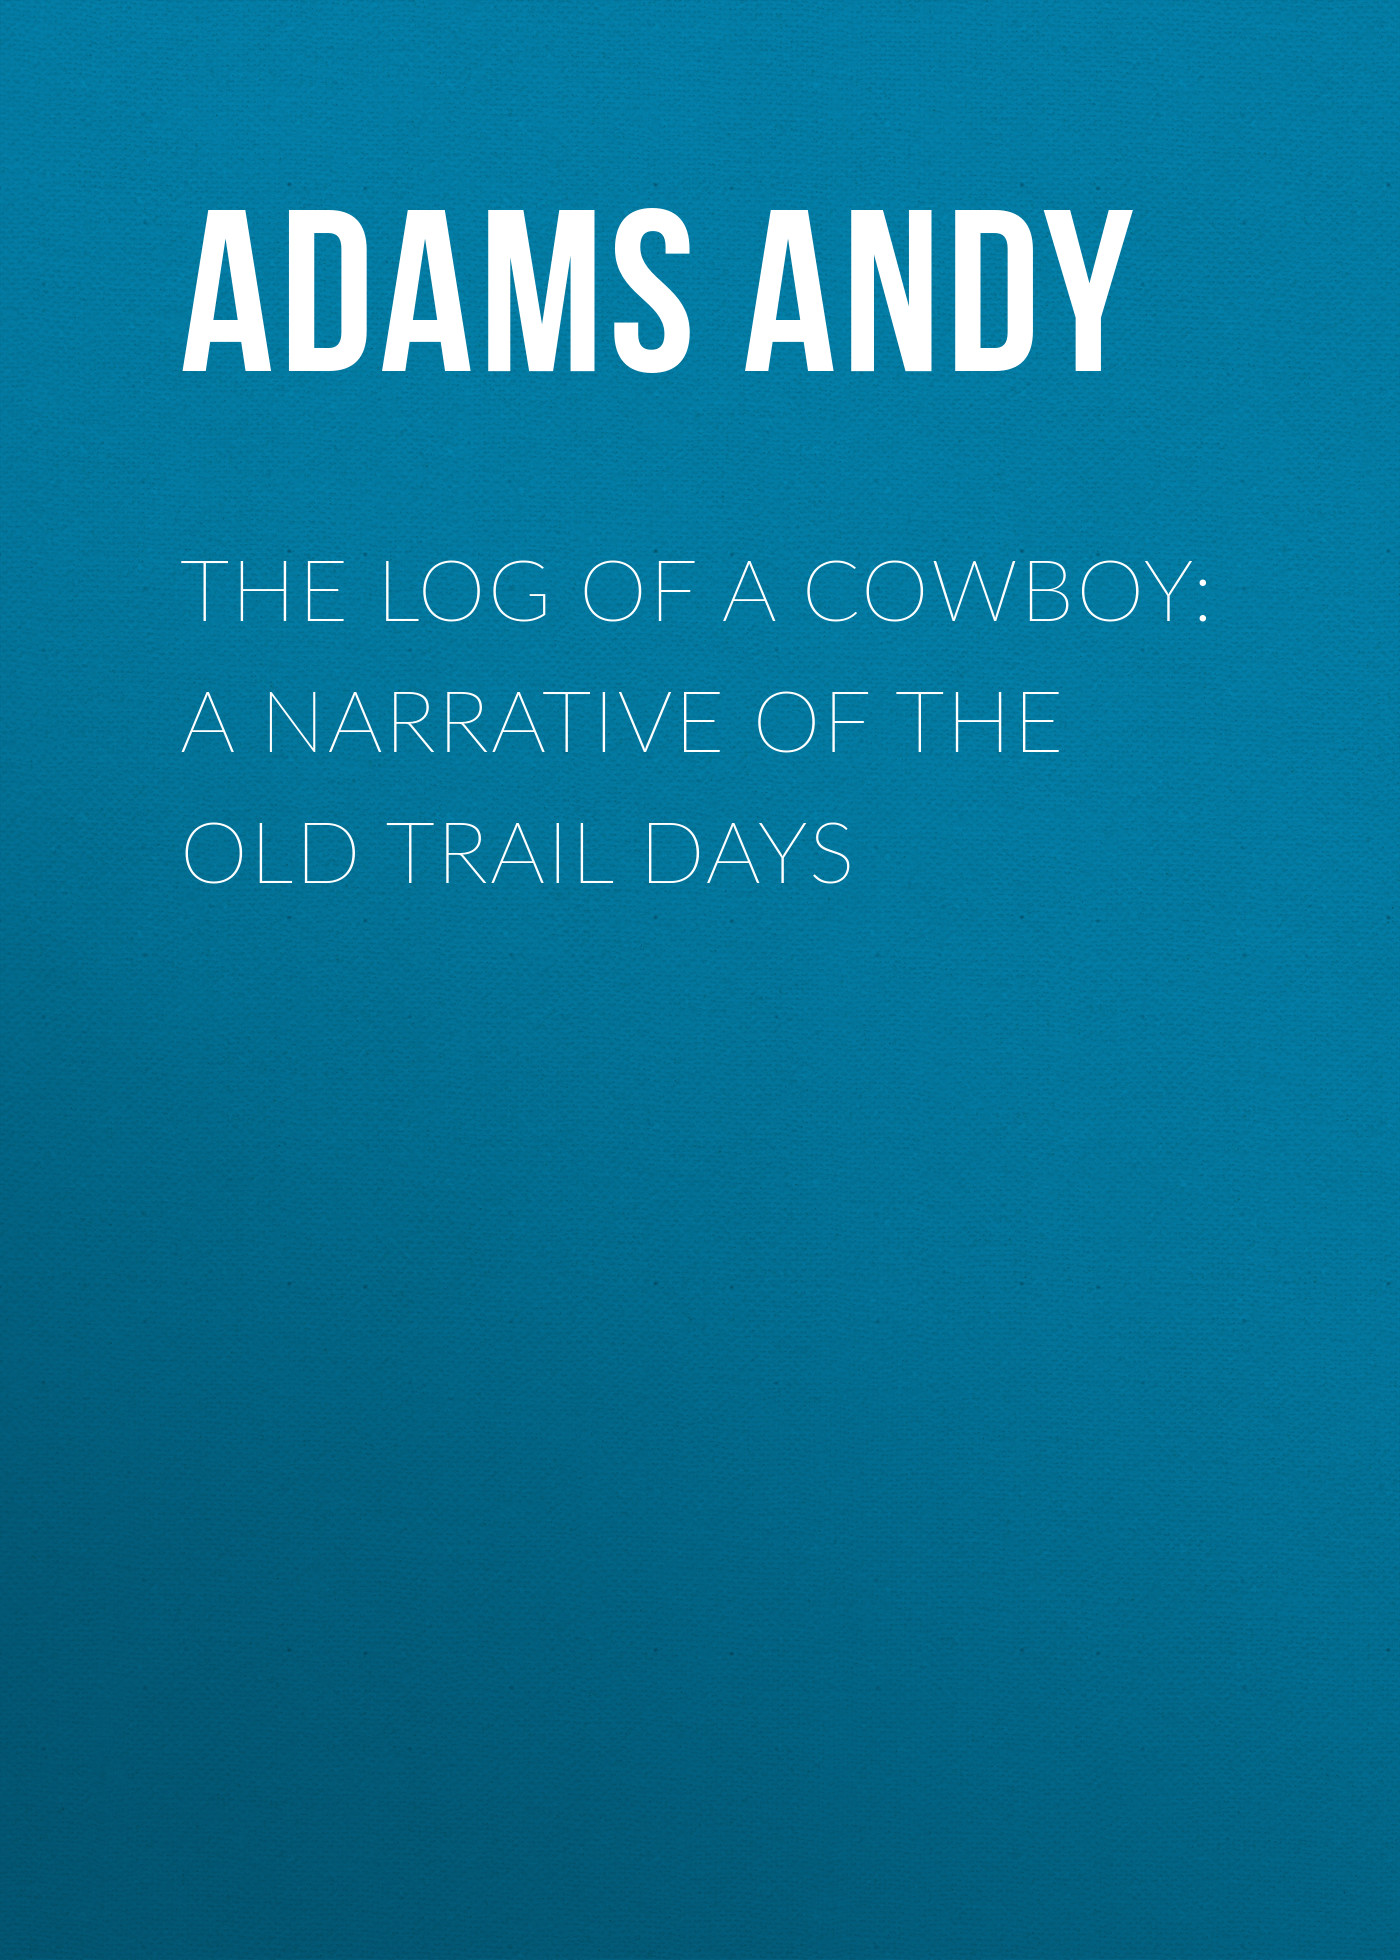 Adams Andy The Log of a Cowboy: A Narrative of the Old Trail Days john adams the death of klinghoffer